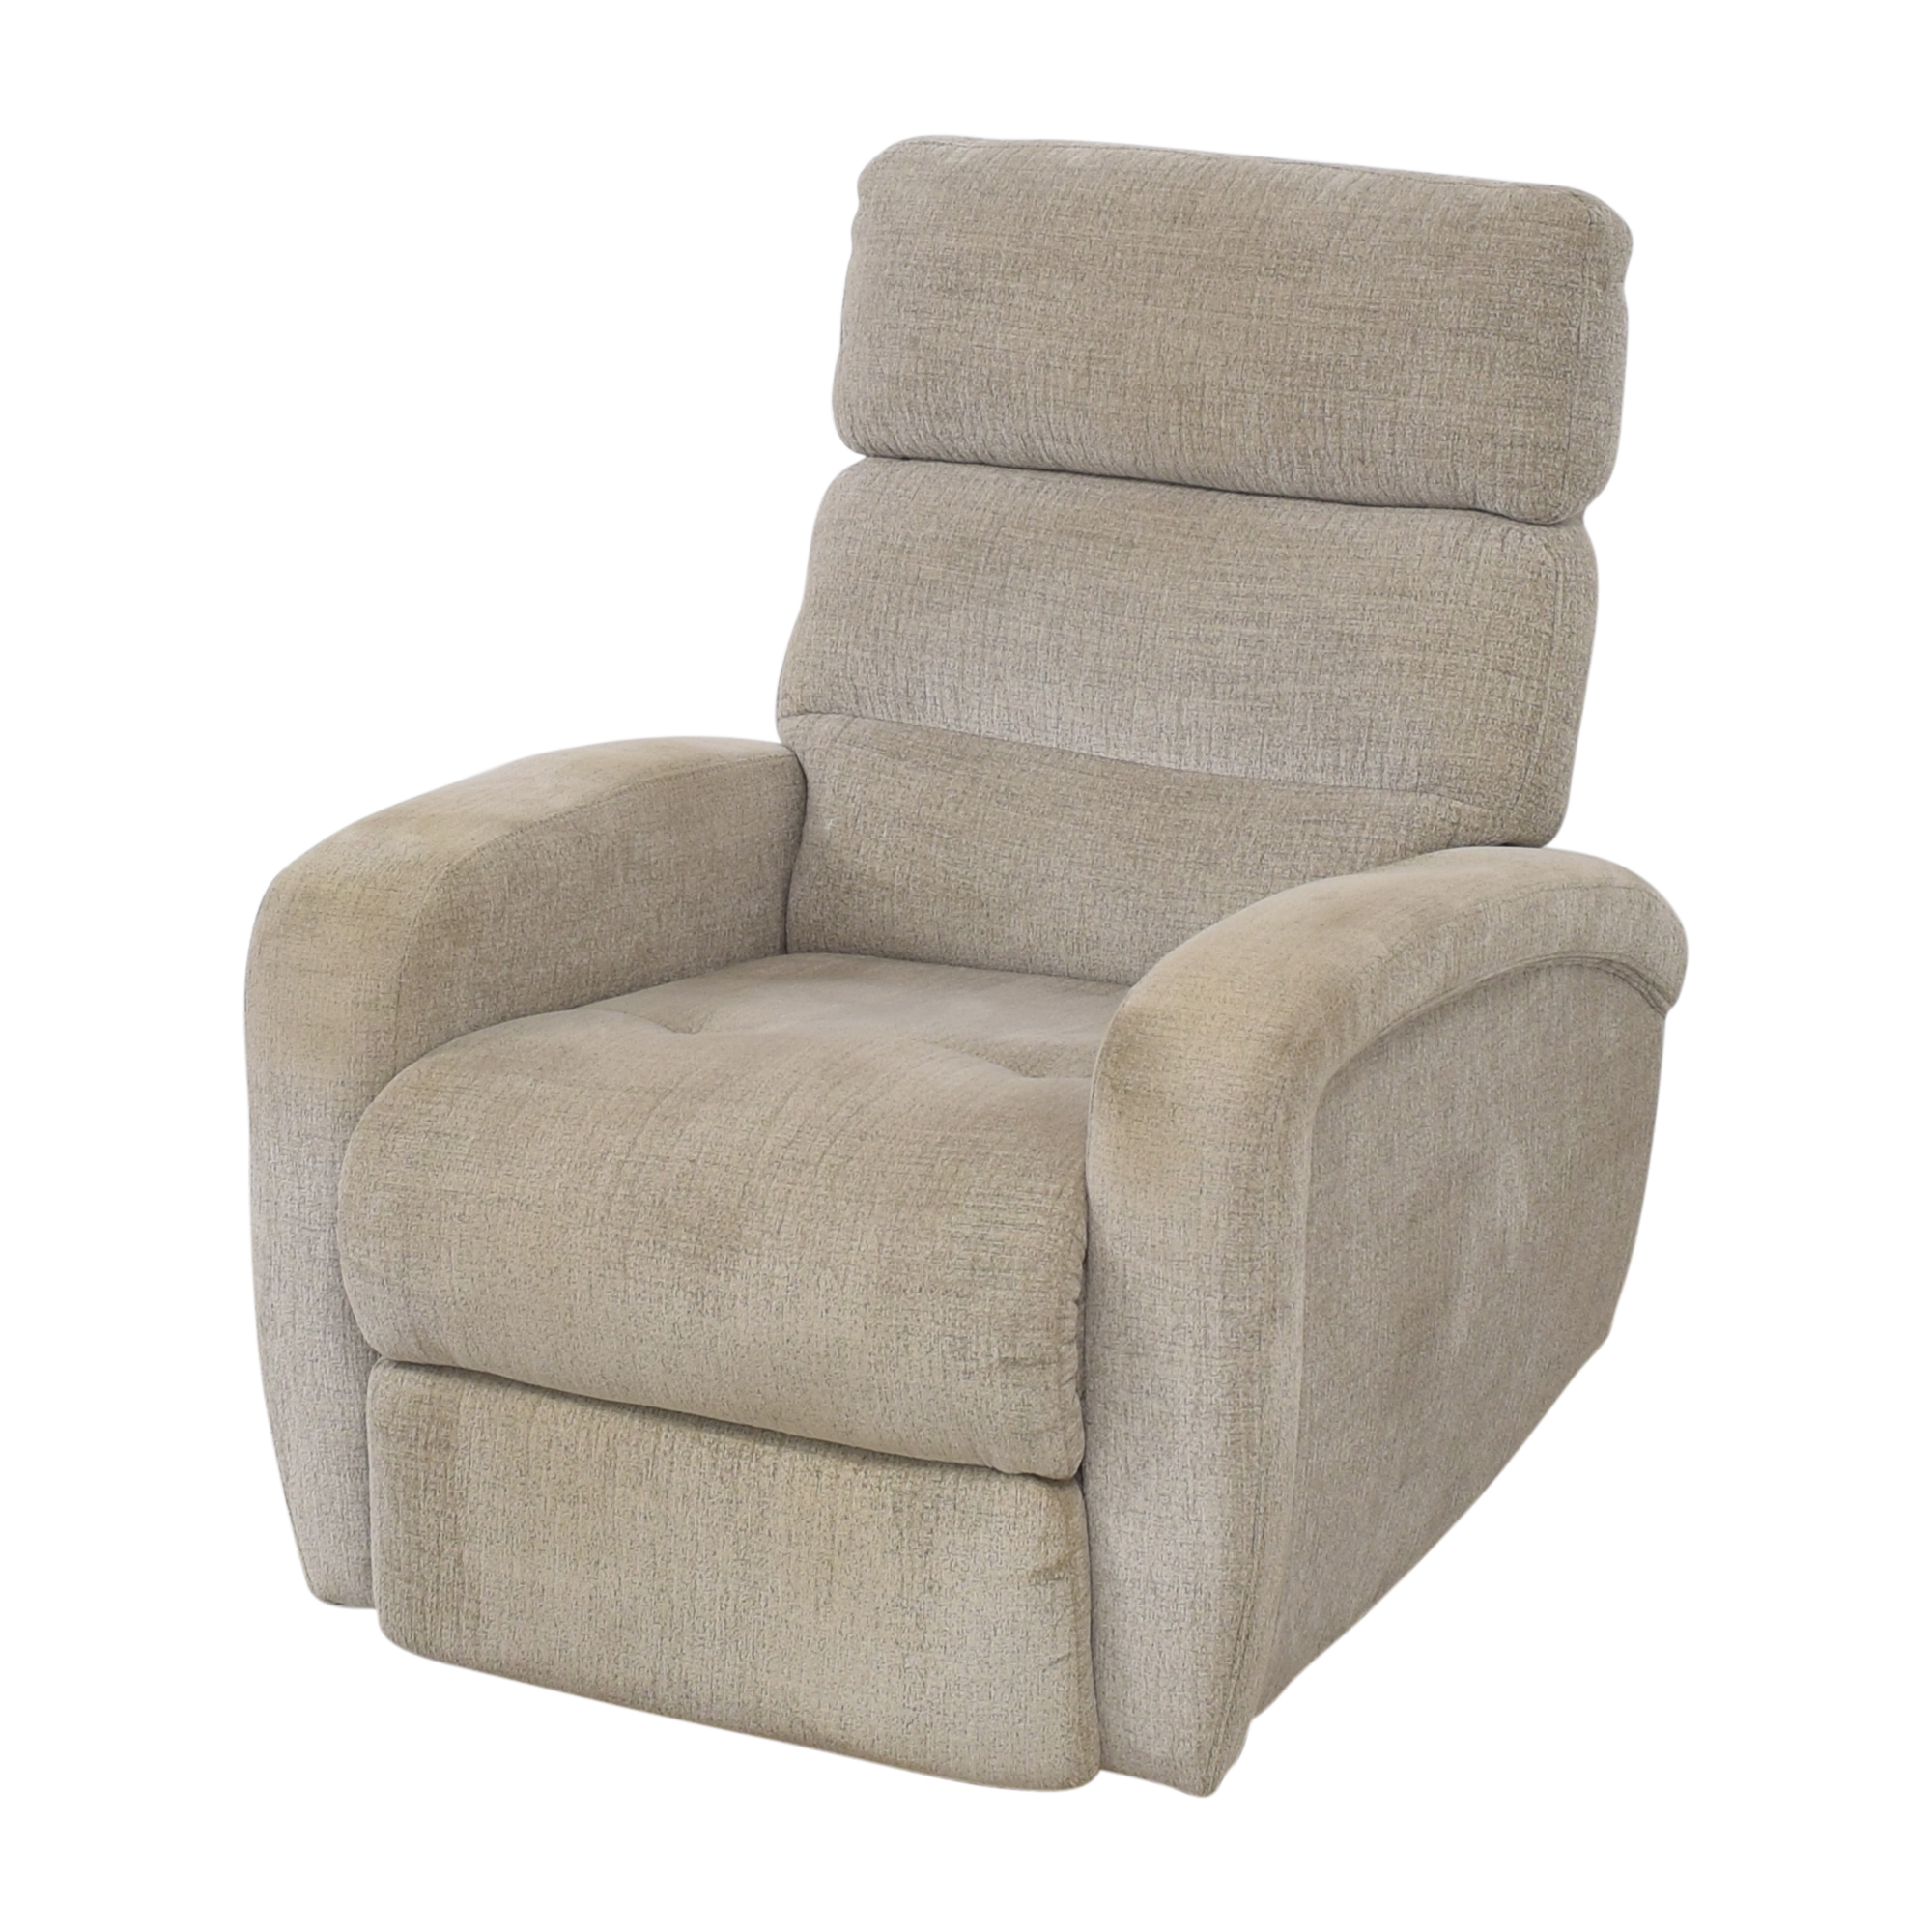 buy Macy's Macy's Stellarae Fabric Power Recliner online